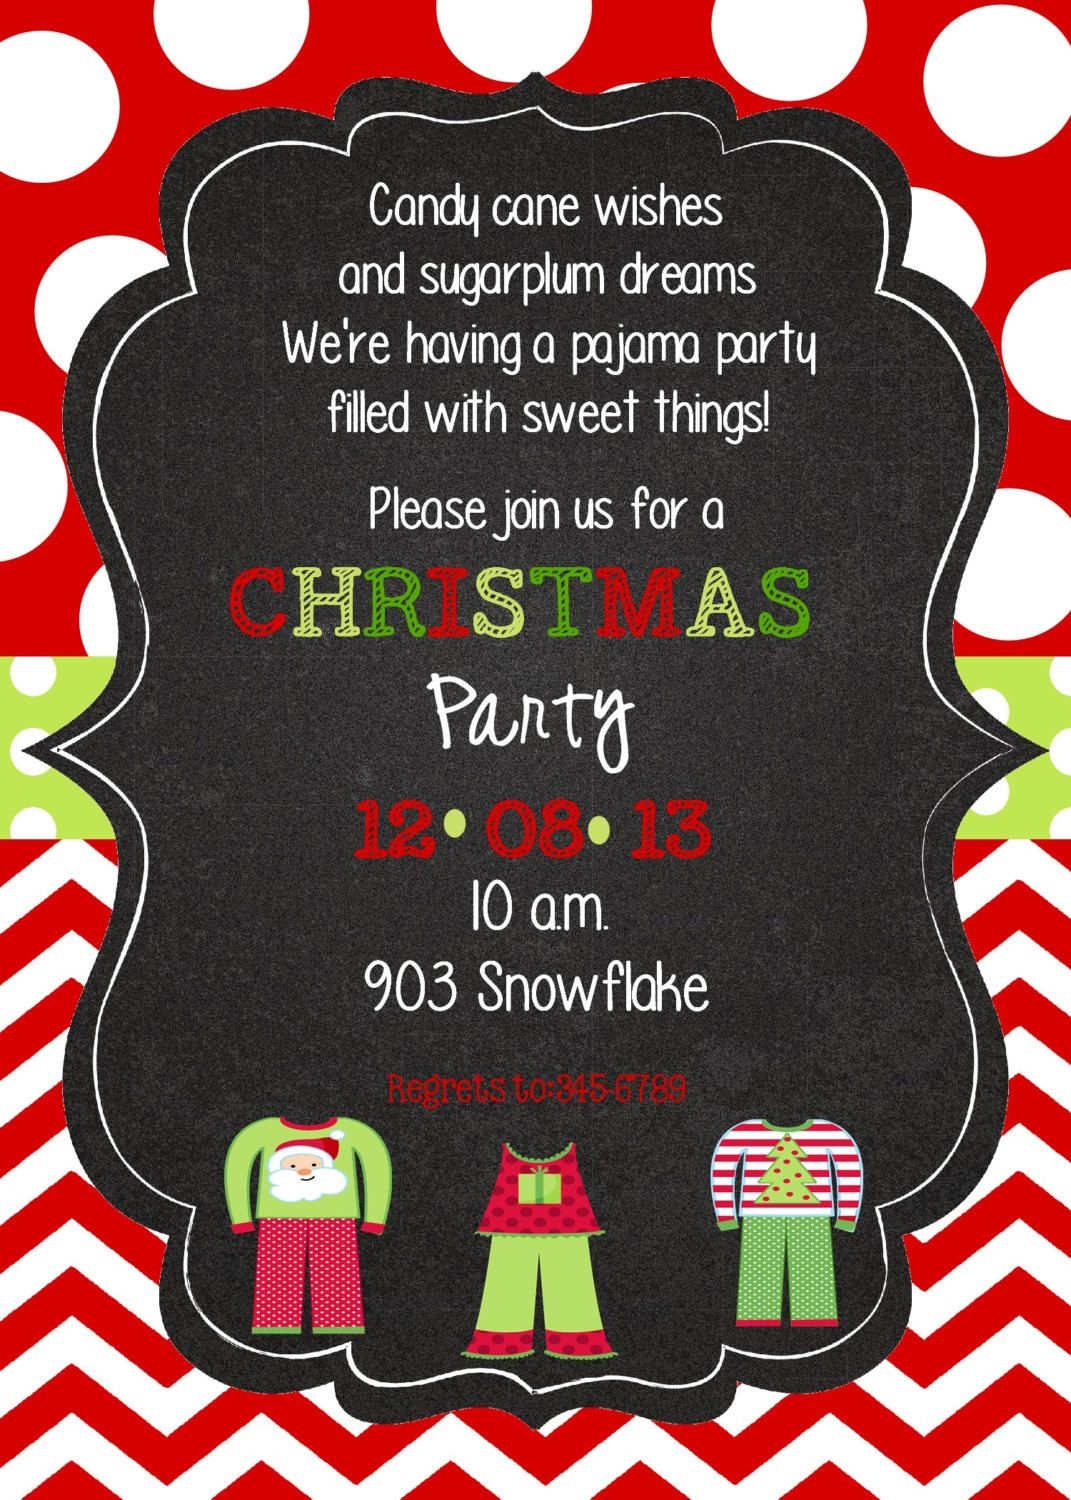 christmas pajama party invitationdigital printable by stickerchic christmas pajama party invitation digital printable pj party by stickerchic on